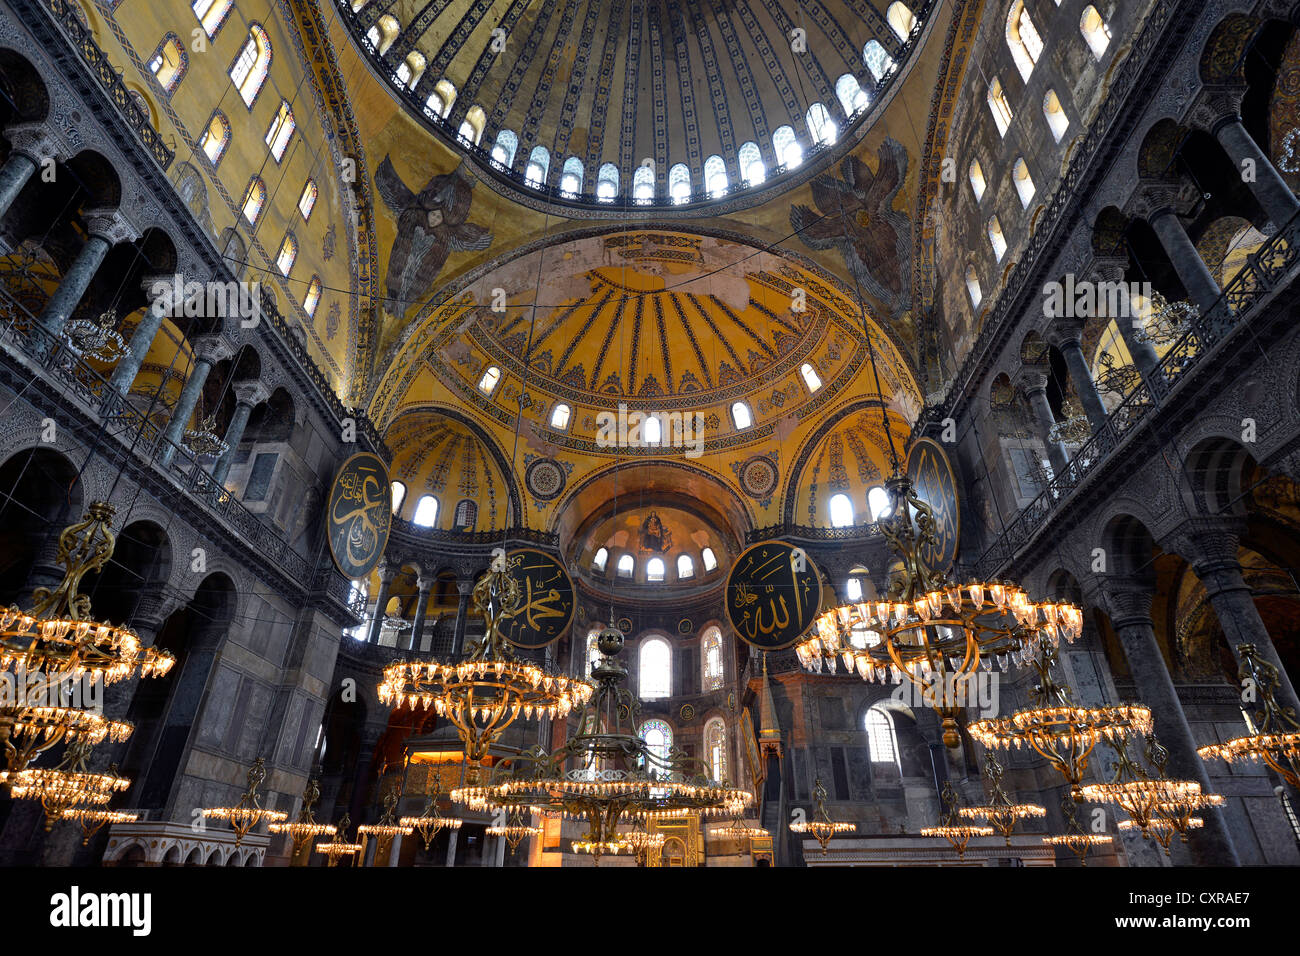 Interior view, main room, dome, Hagia Sophia, Ayasofya, UNESCO World Heritage Site, Istanbul, Turkey, Europe Stock Photo